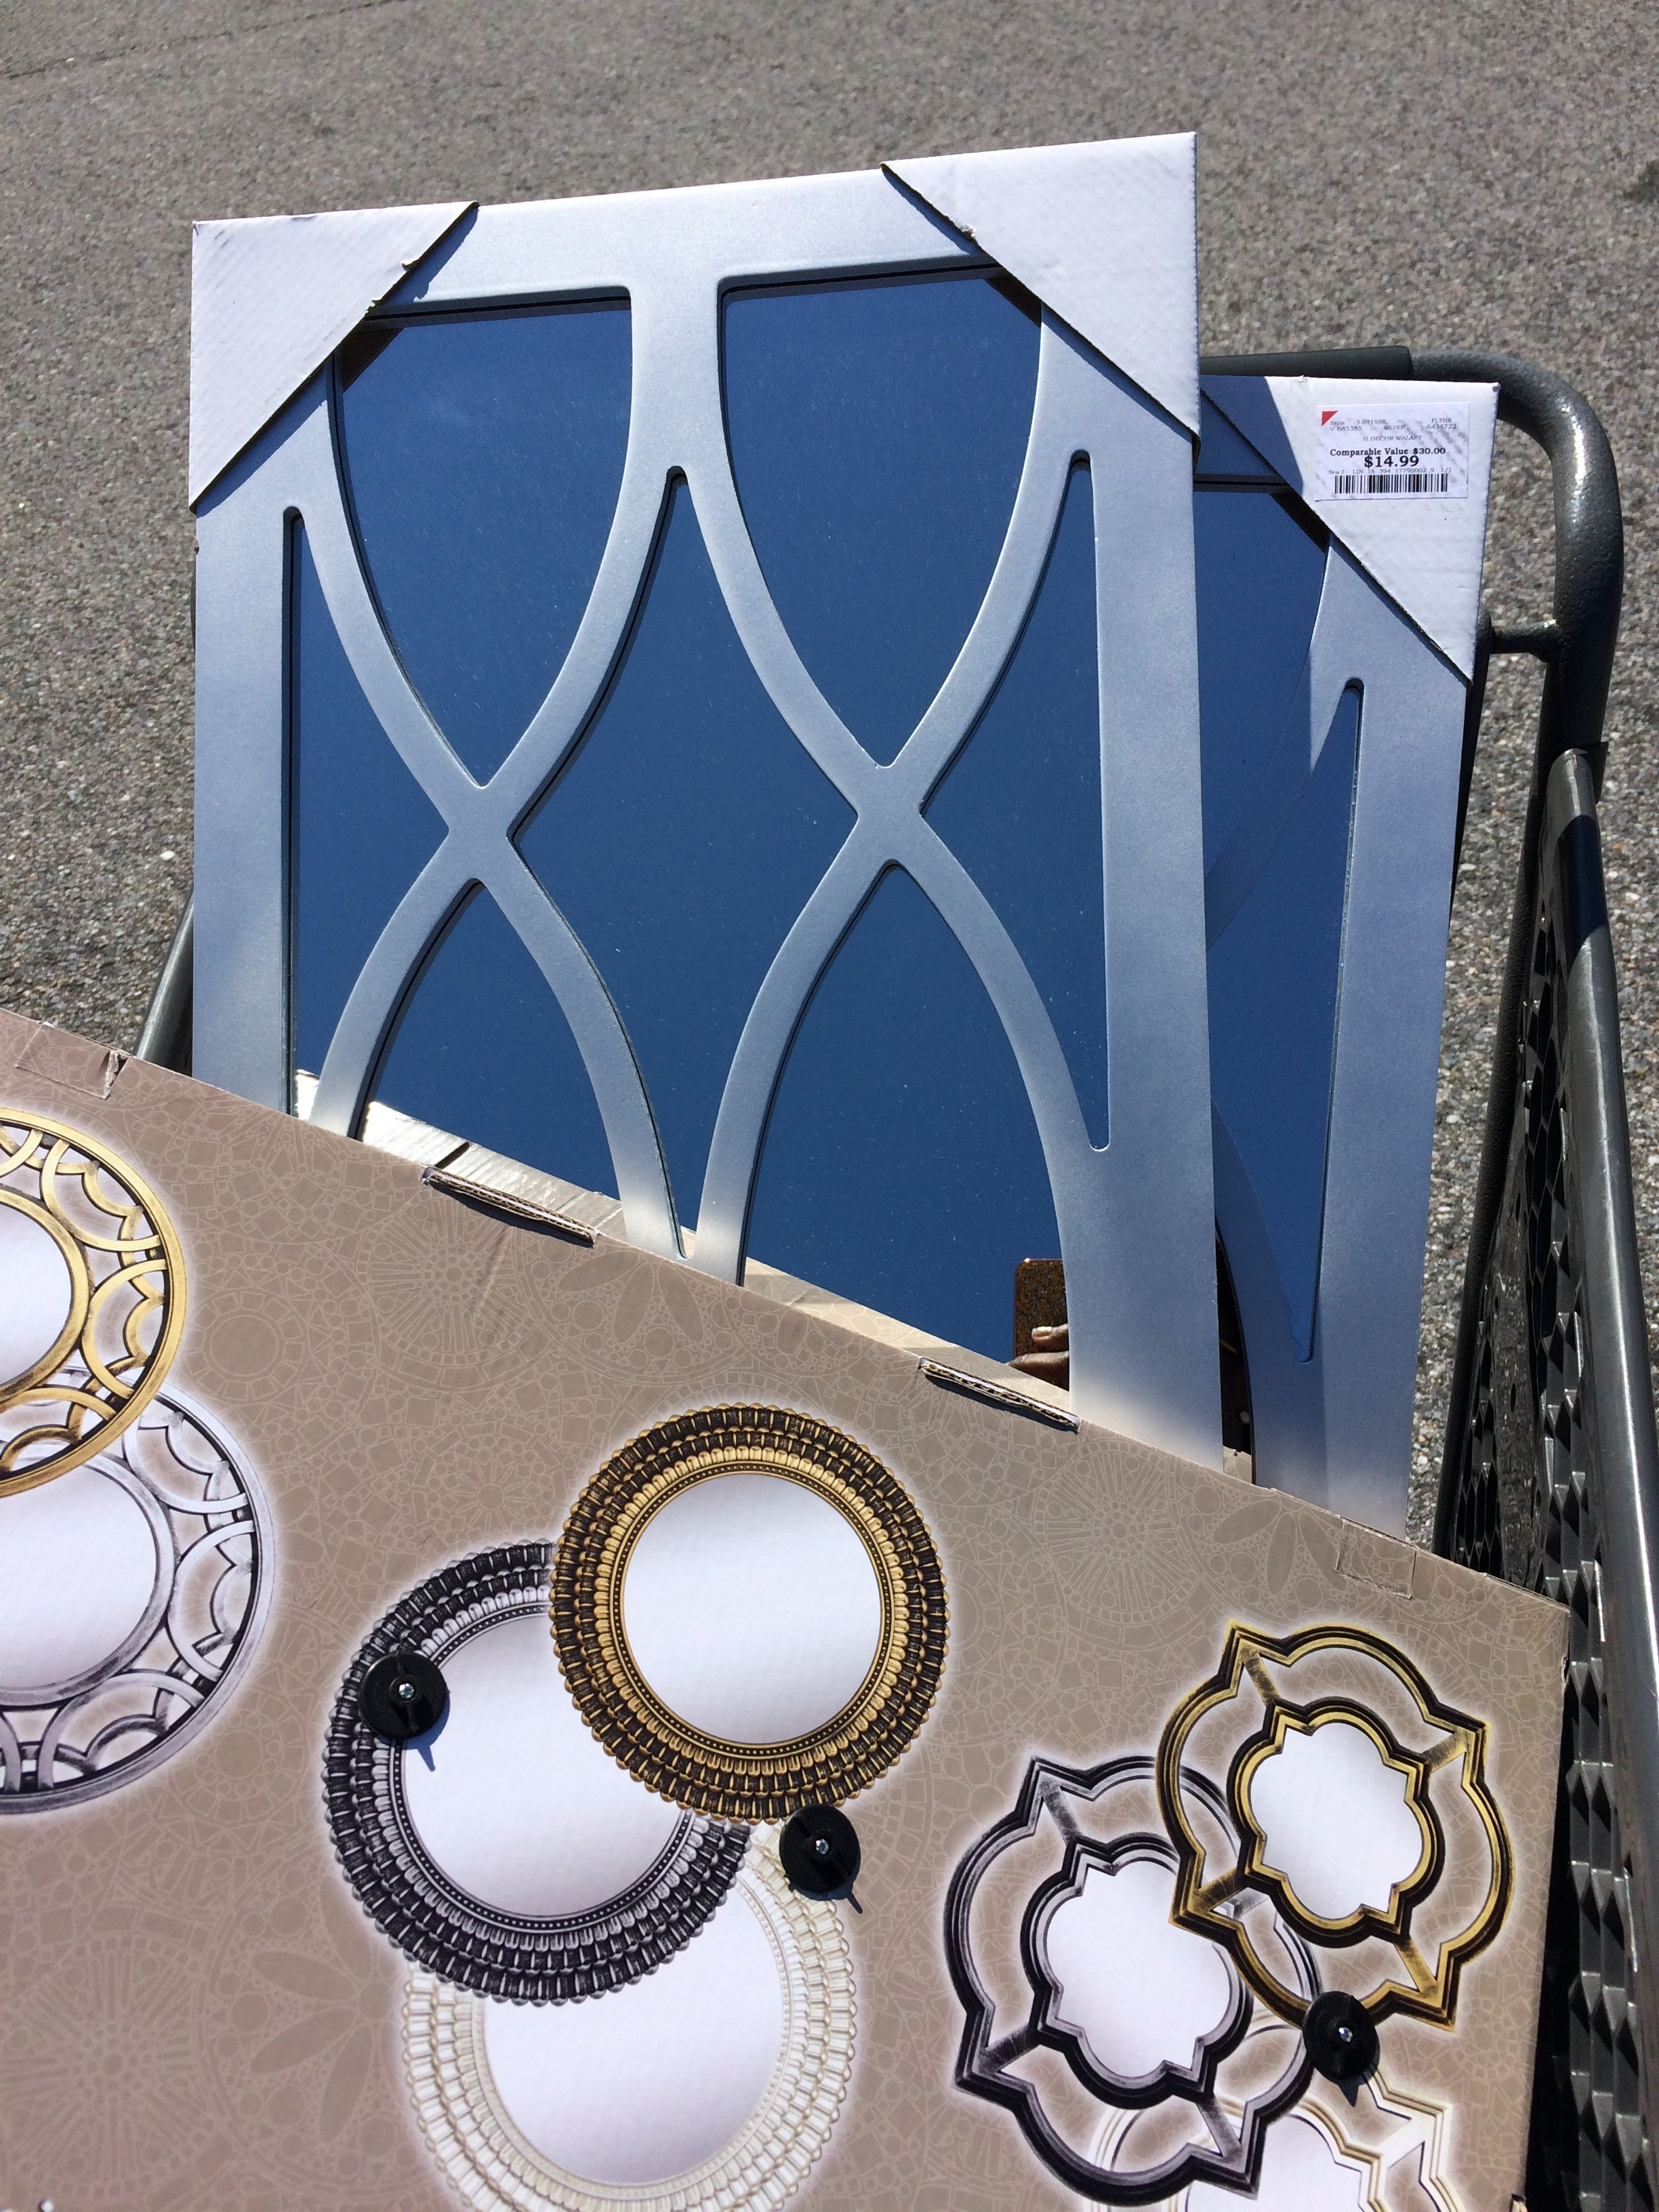 Mirrors From Burlington Coat Factory For 15 00 Nice Decor Pieces That Won T Break Your Pockets Coat Factory Burlington Coat Factory Fun Decor